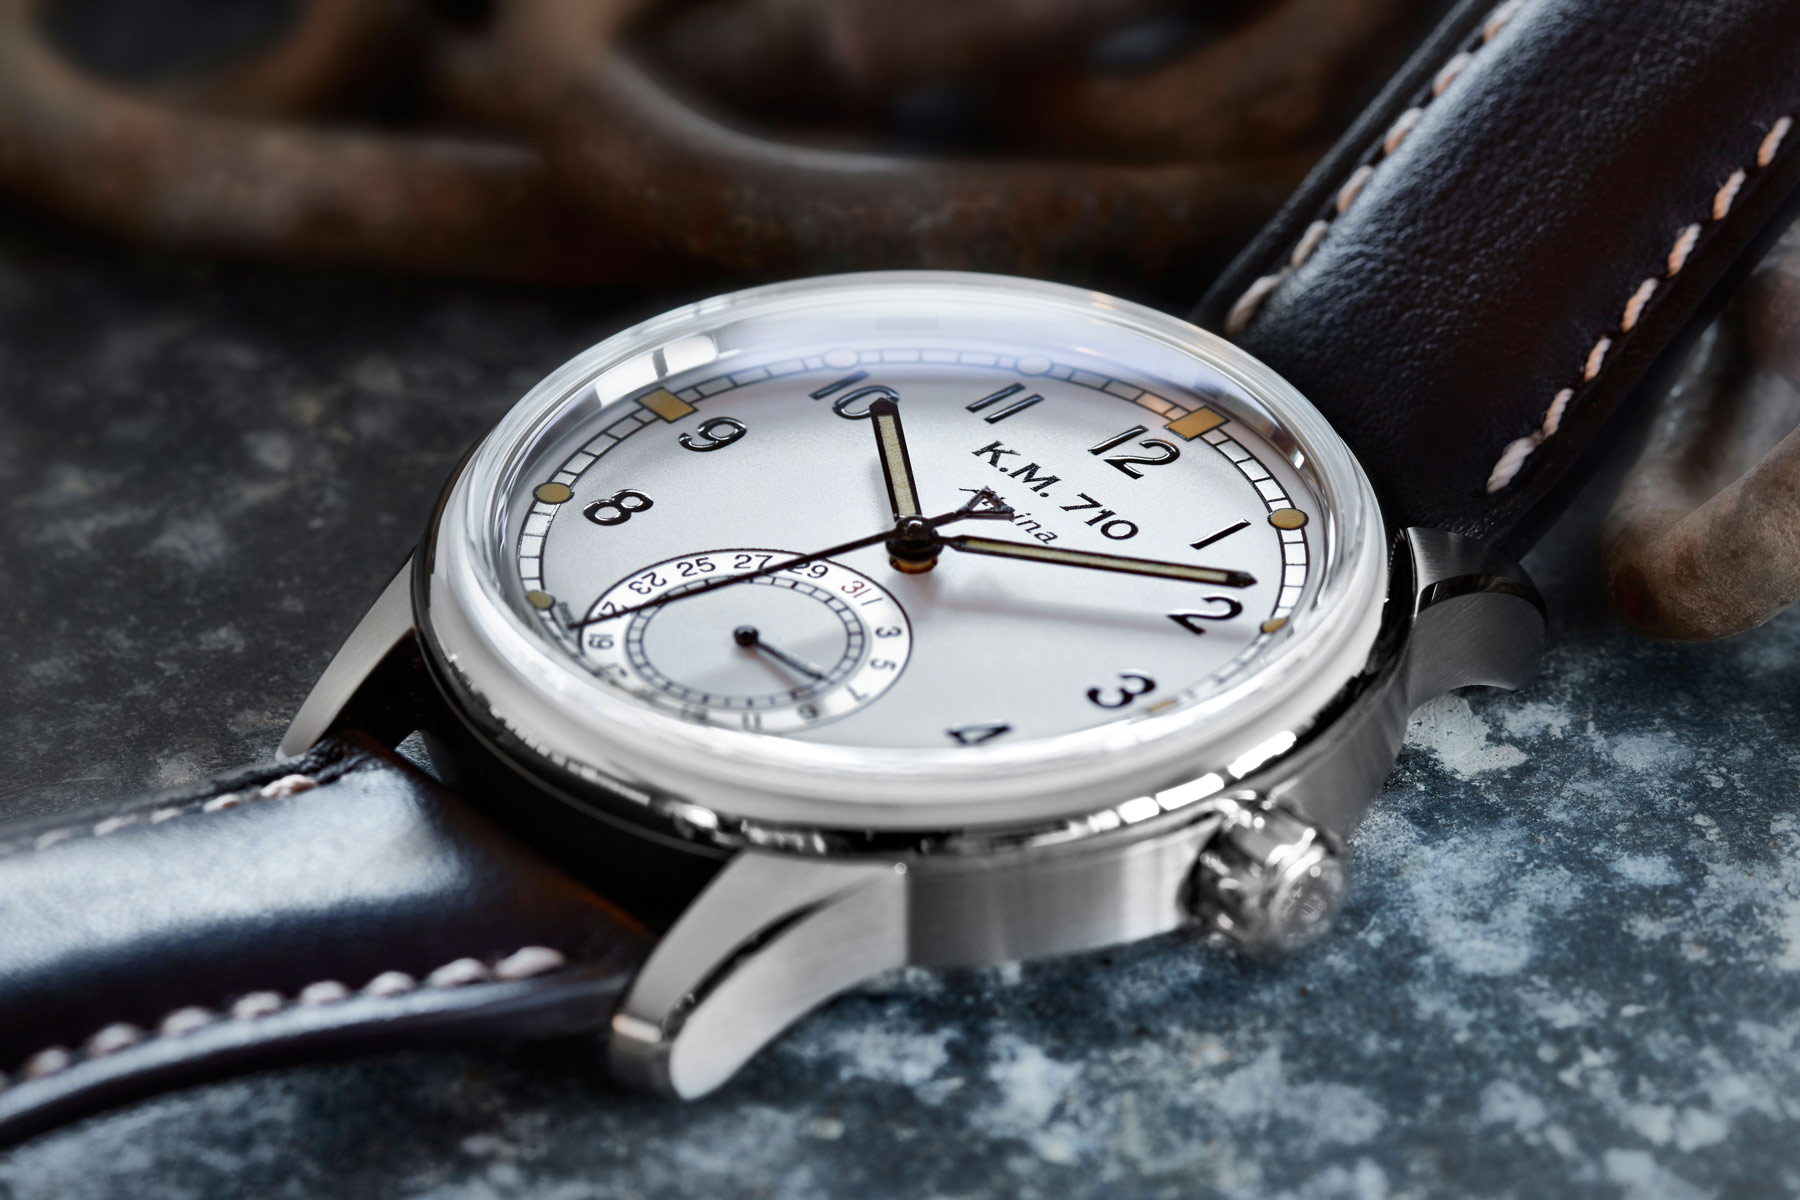 The Alpina KM-710 Wristwatch With In-house AL-710 Automatic Calibre